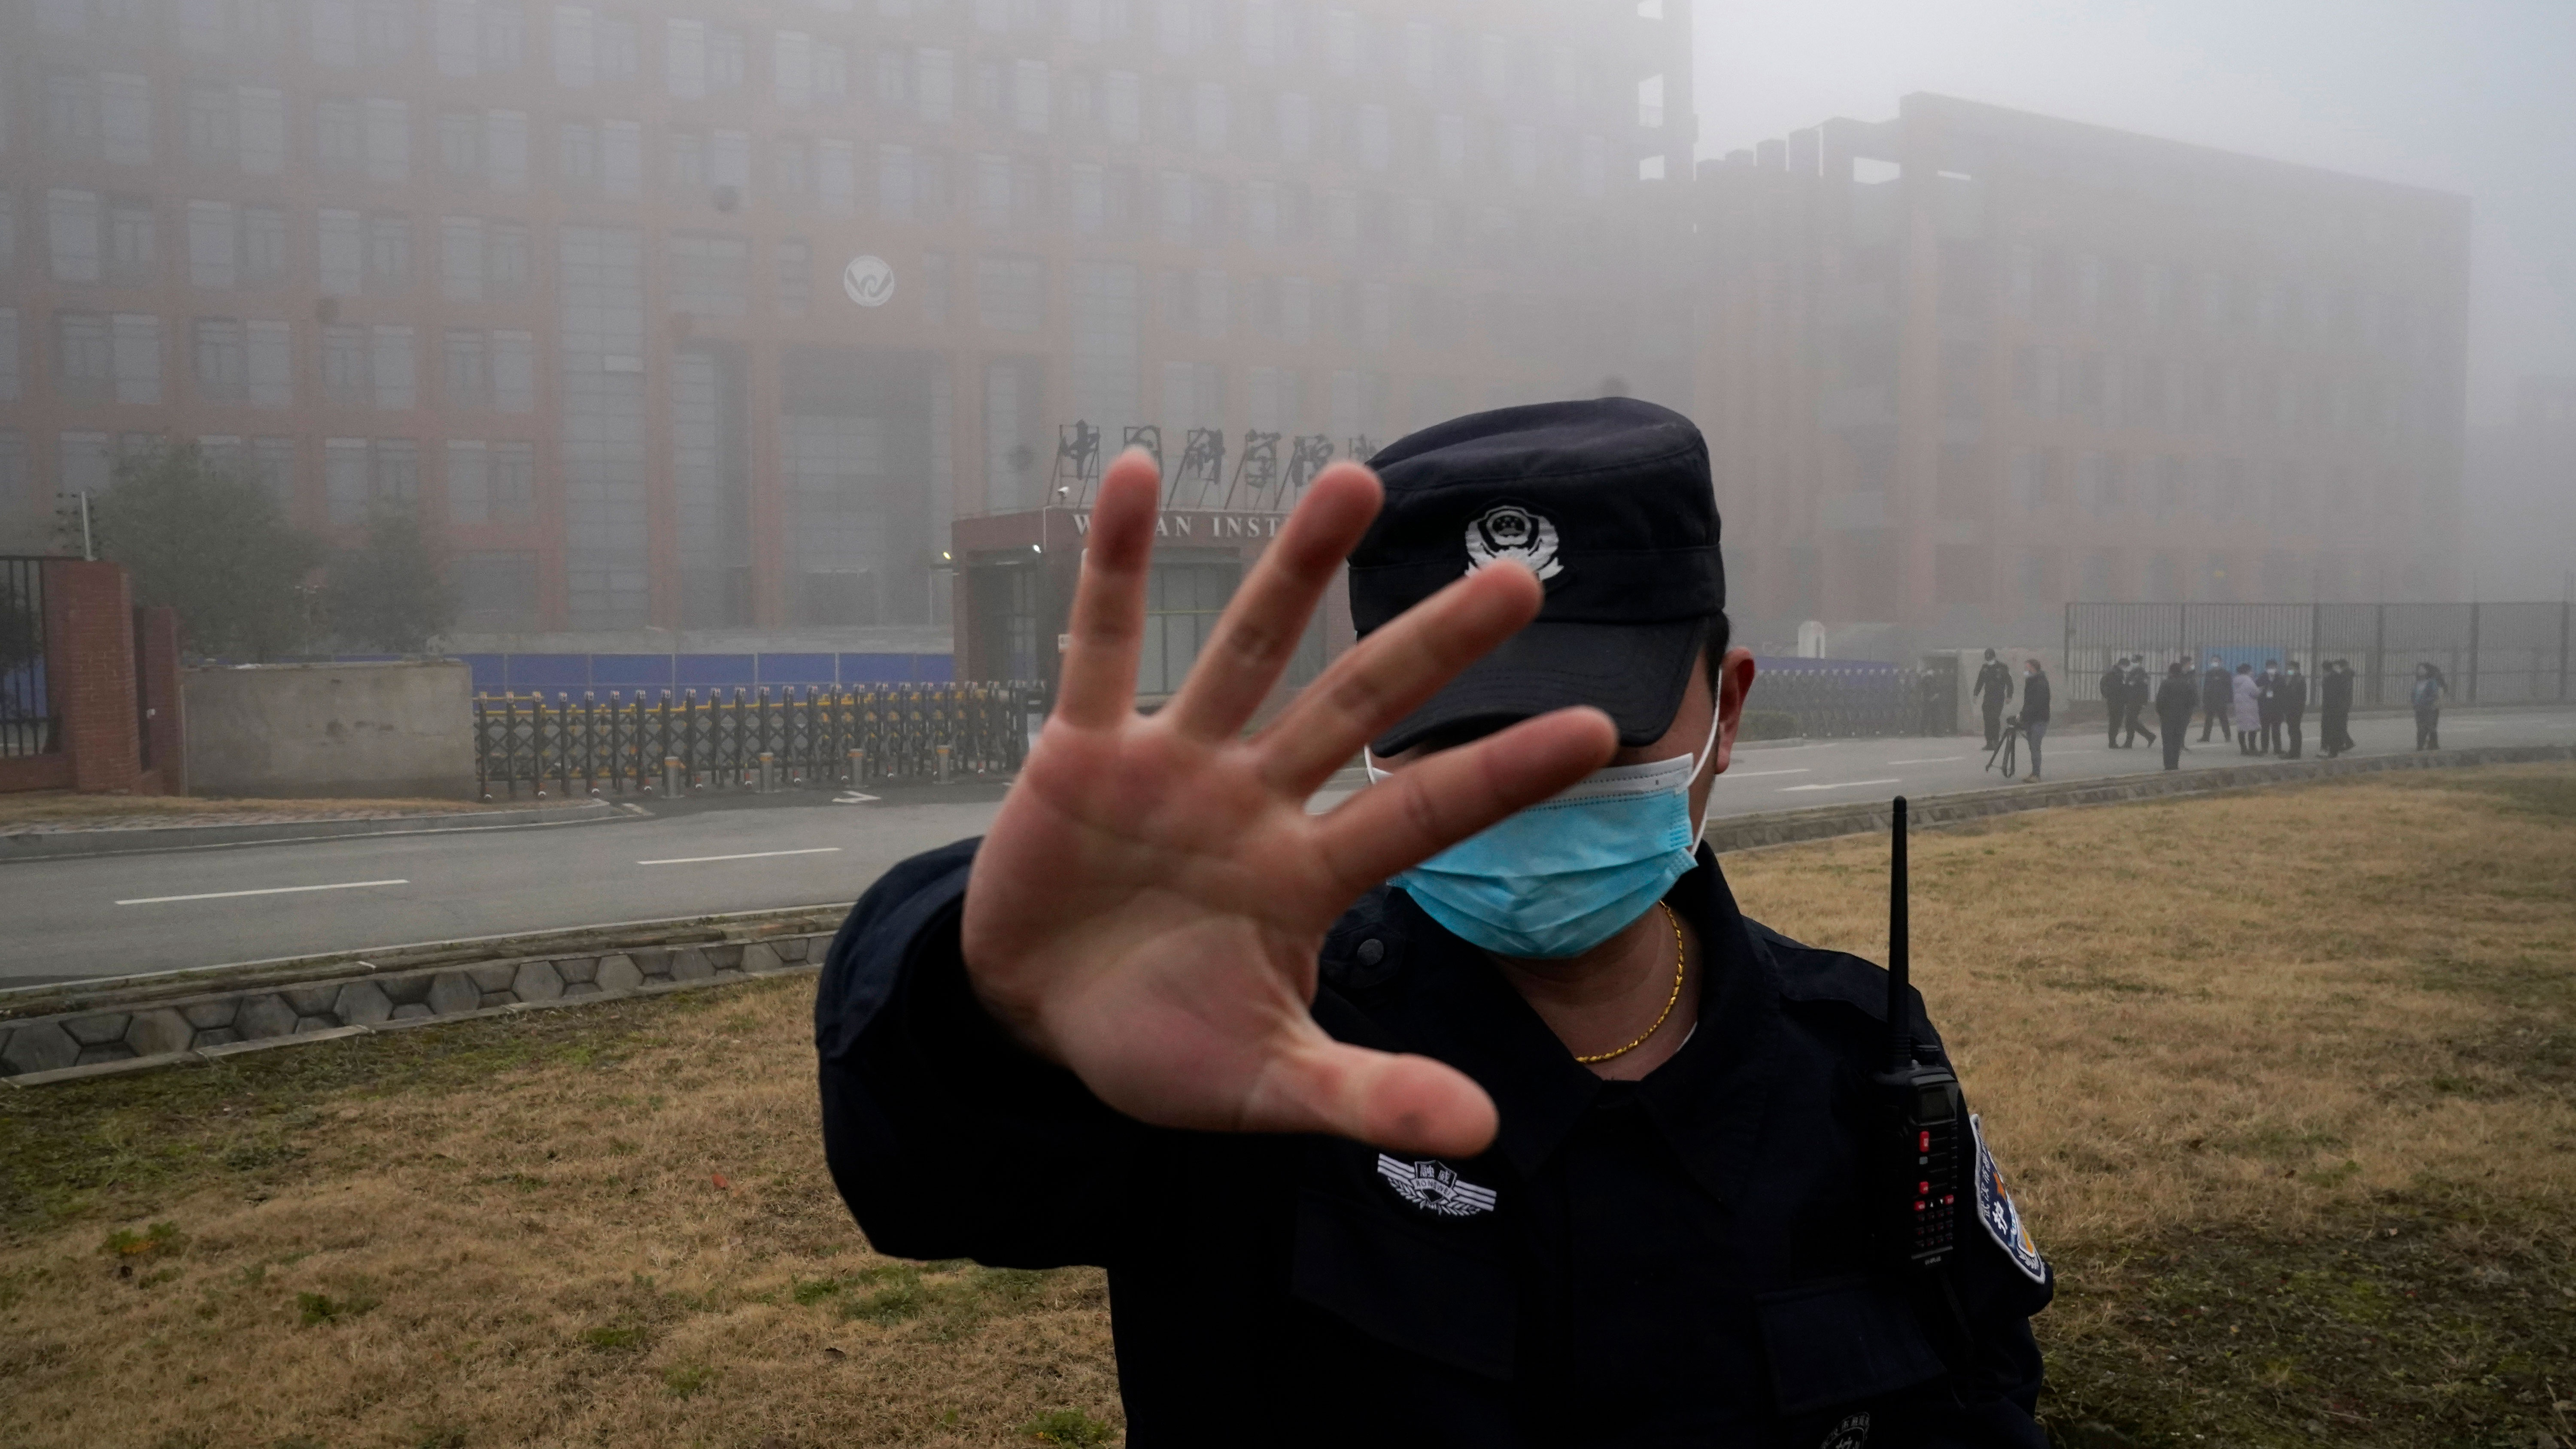 A security person moves journalists away from the Wuhan Institute of Virology after a World Health Organisation team arrived for a field visit in Wuhan in China's Hubei province in February 2021.